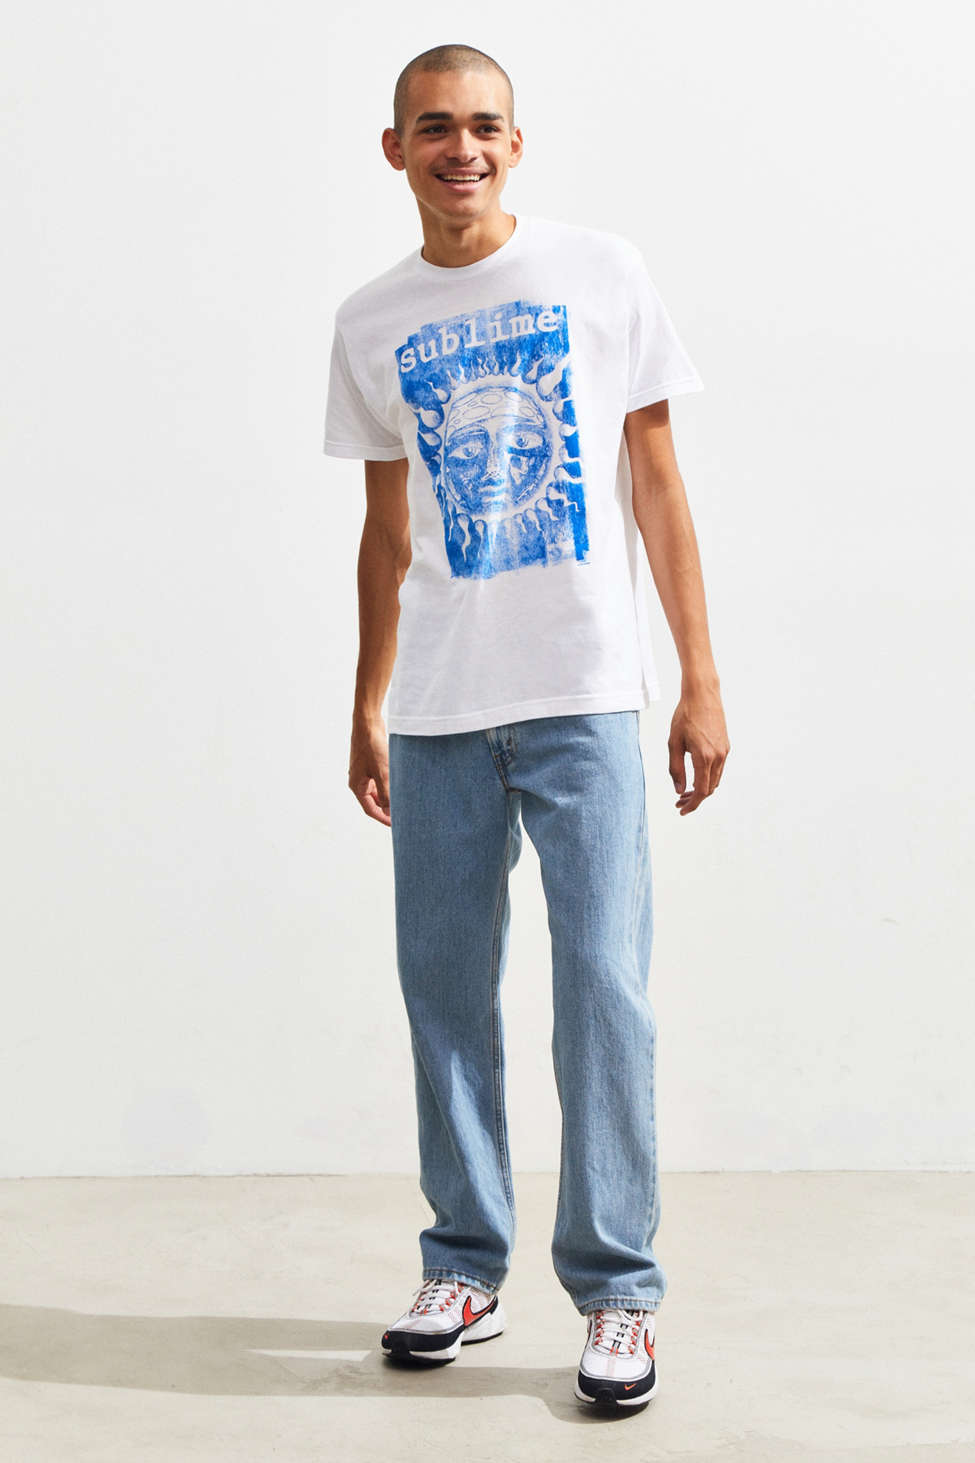 Sublime Sun Tee by Urban Outfitters